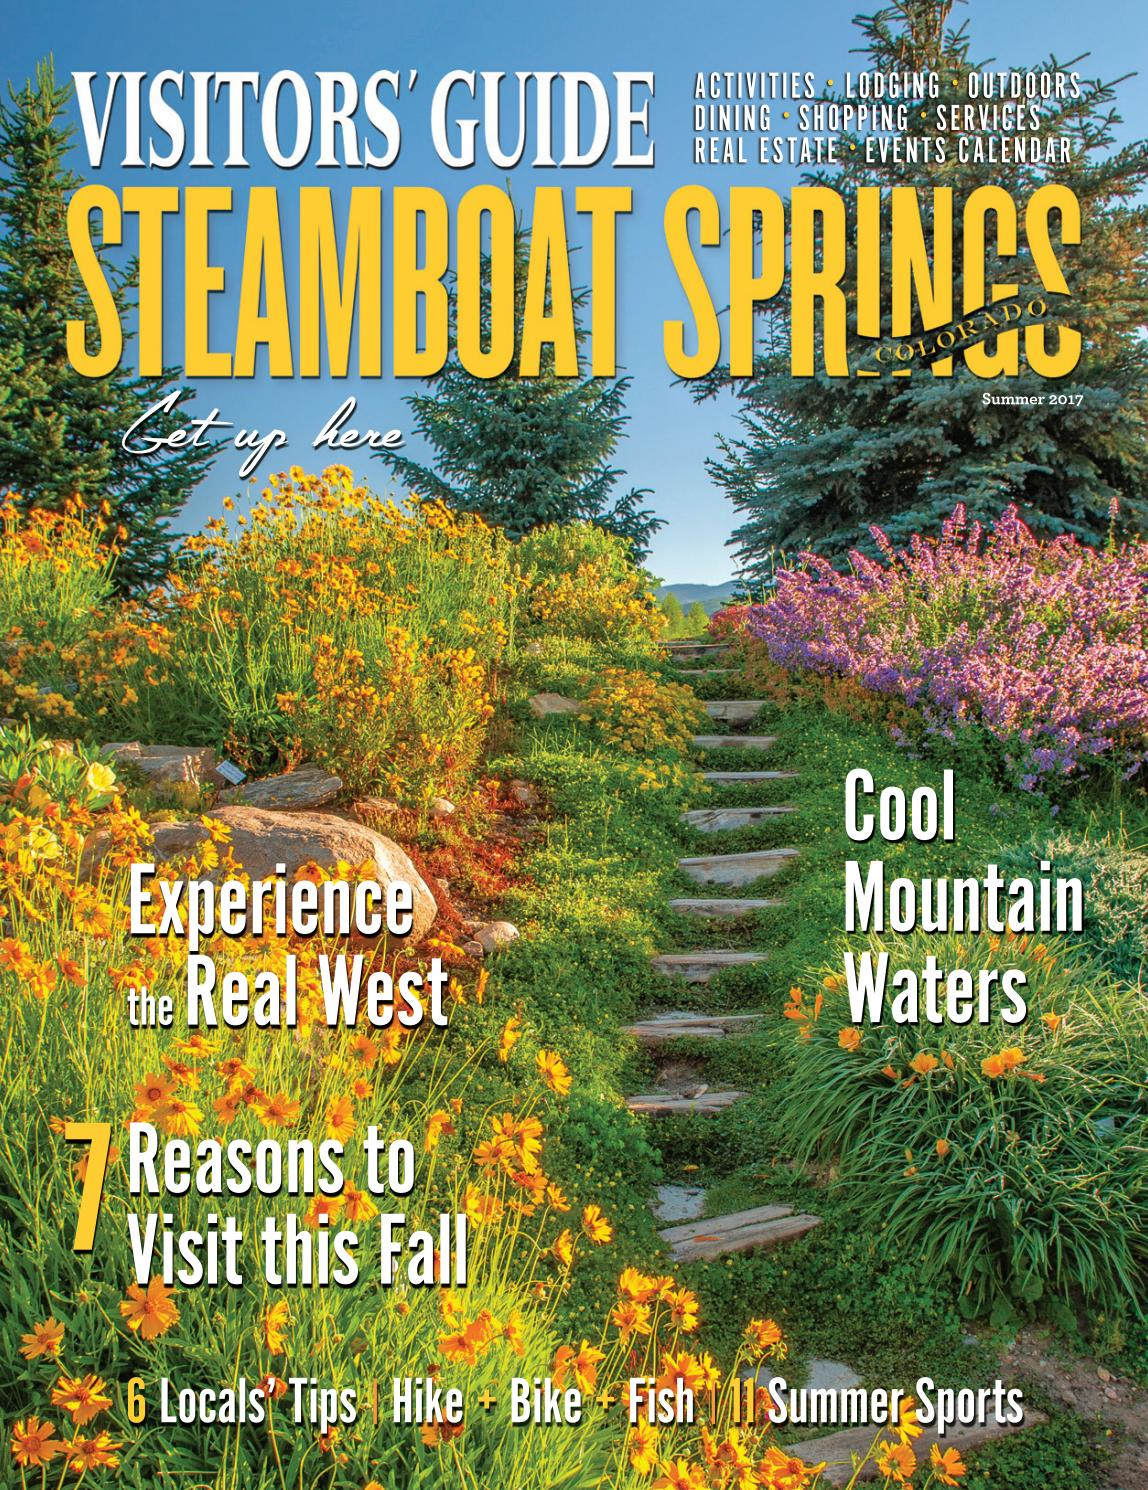 shop majestic home goods red plantation floral square.htm steamboat springs visitors  guide summer 2017 by steamboat springs  steamboat springs visitors  guide